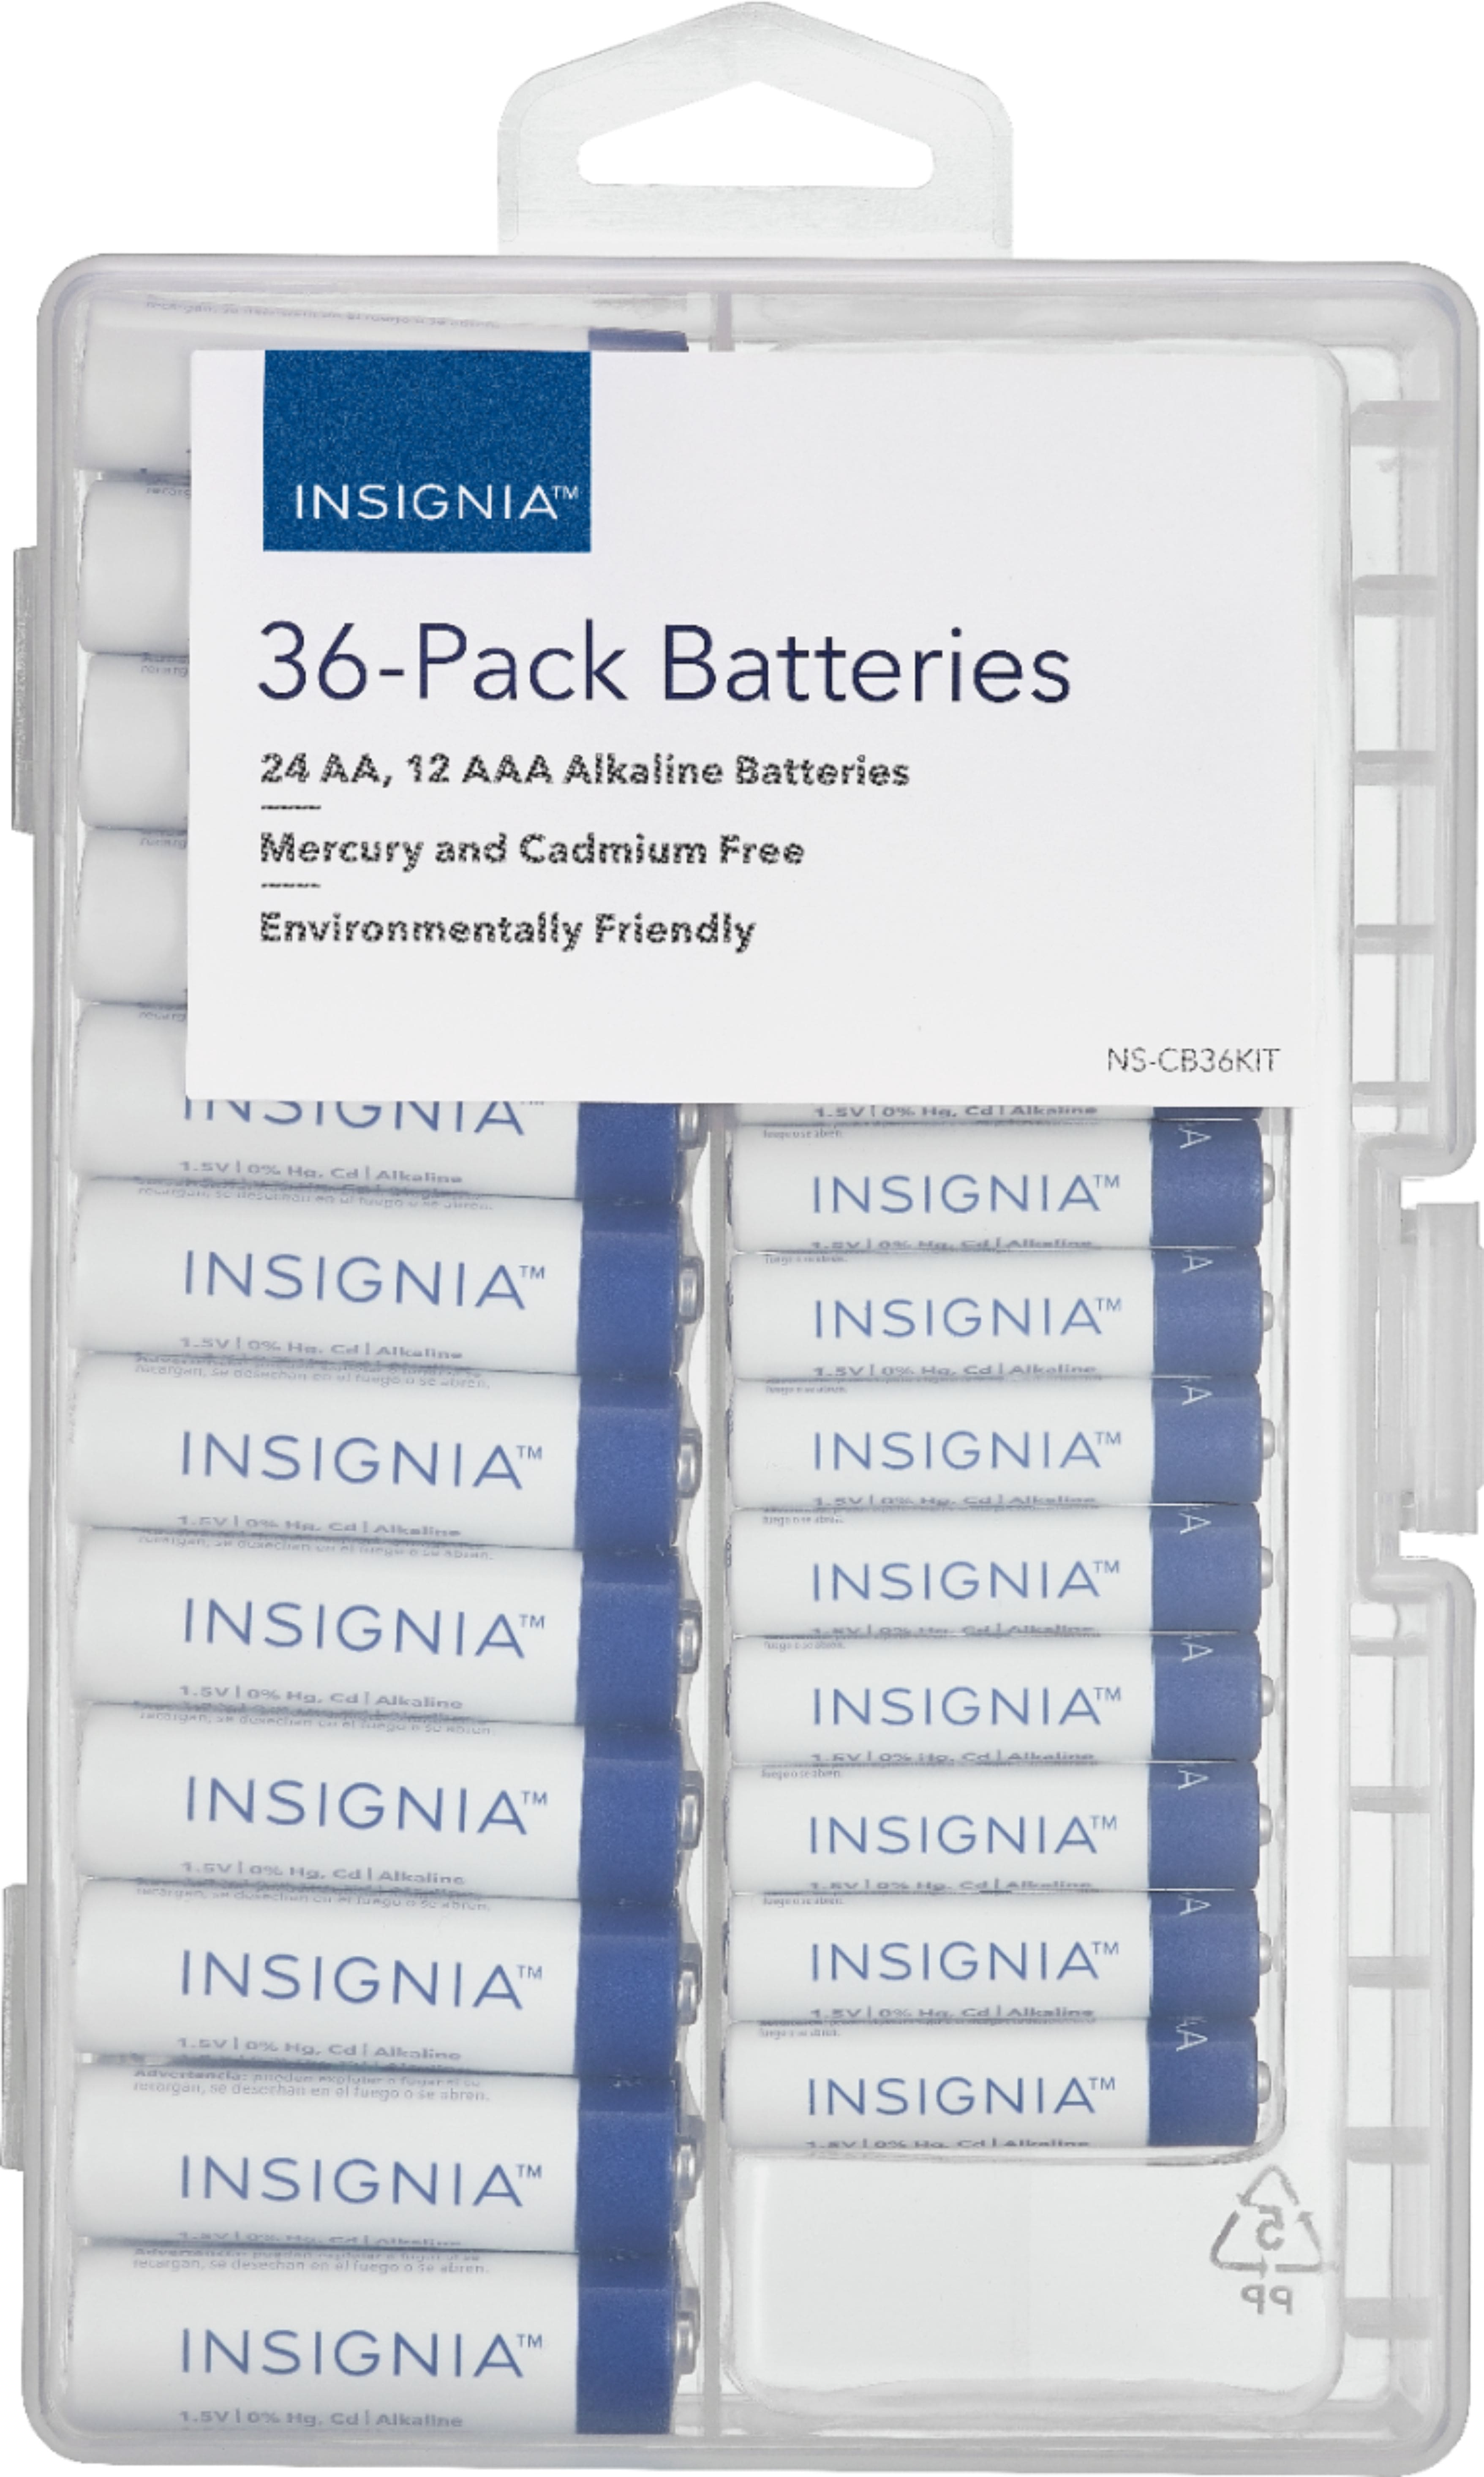 36-Pack Insignia Alkaline Batteries w/ Case (24-Count AA + 12-Count AAA) $6.80 + Free Store Pickup